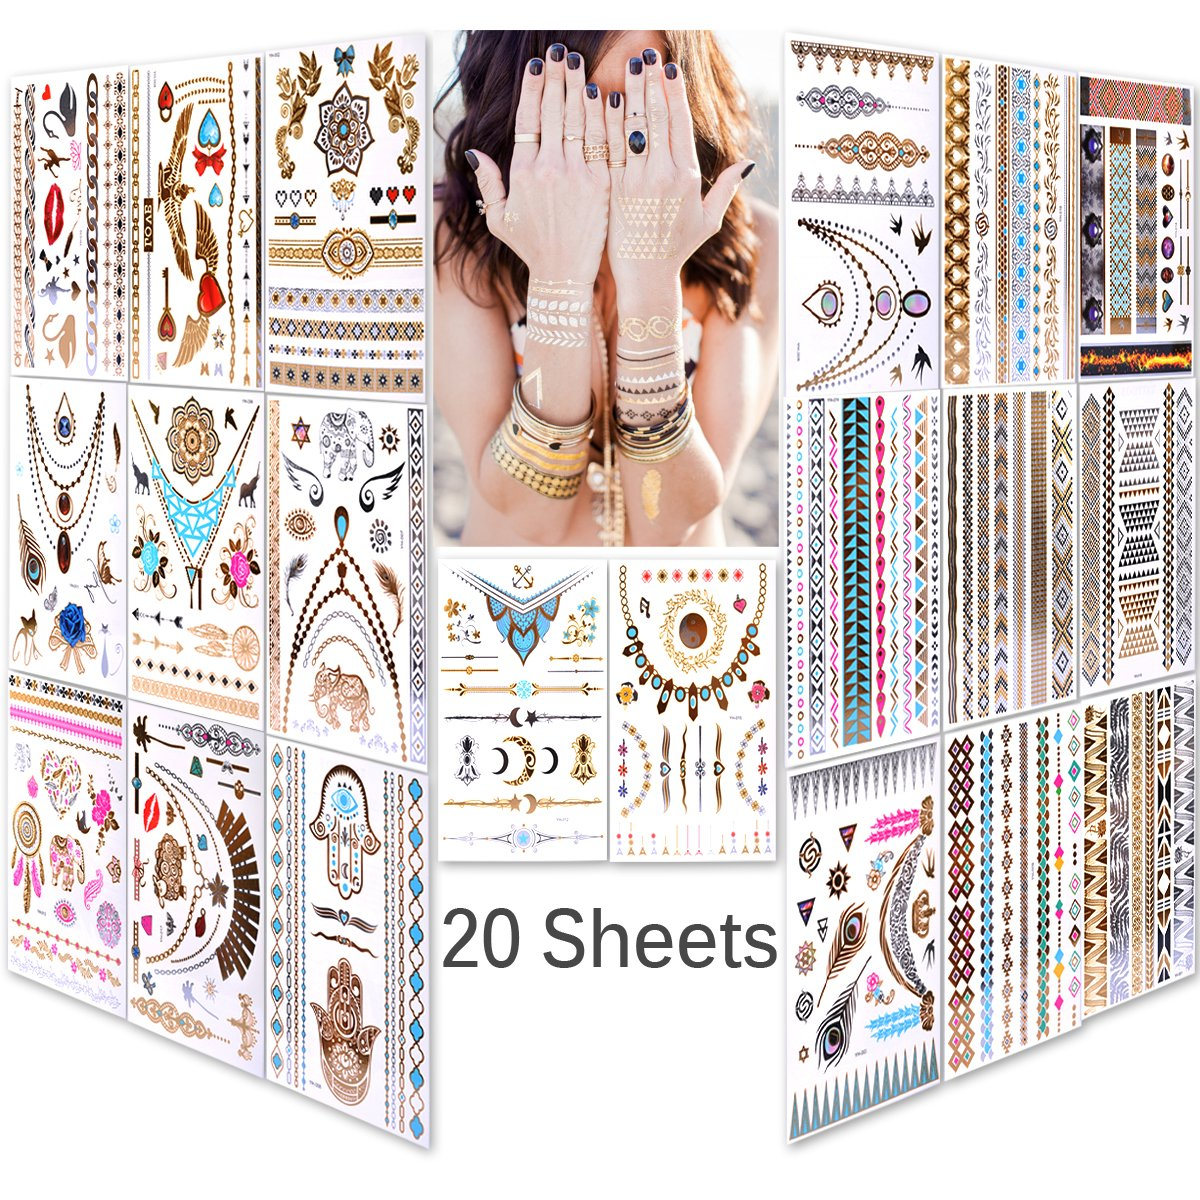 Lady Up 20 sheets 150+ designs Body art Temporary Tattoos Papers Metallic Flash Gold Silver Multi-Colored Waterproof Tattoos for Women Kids & Men 21X15cm/p